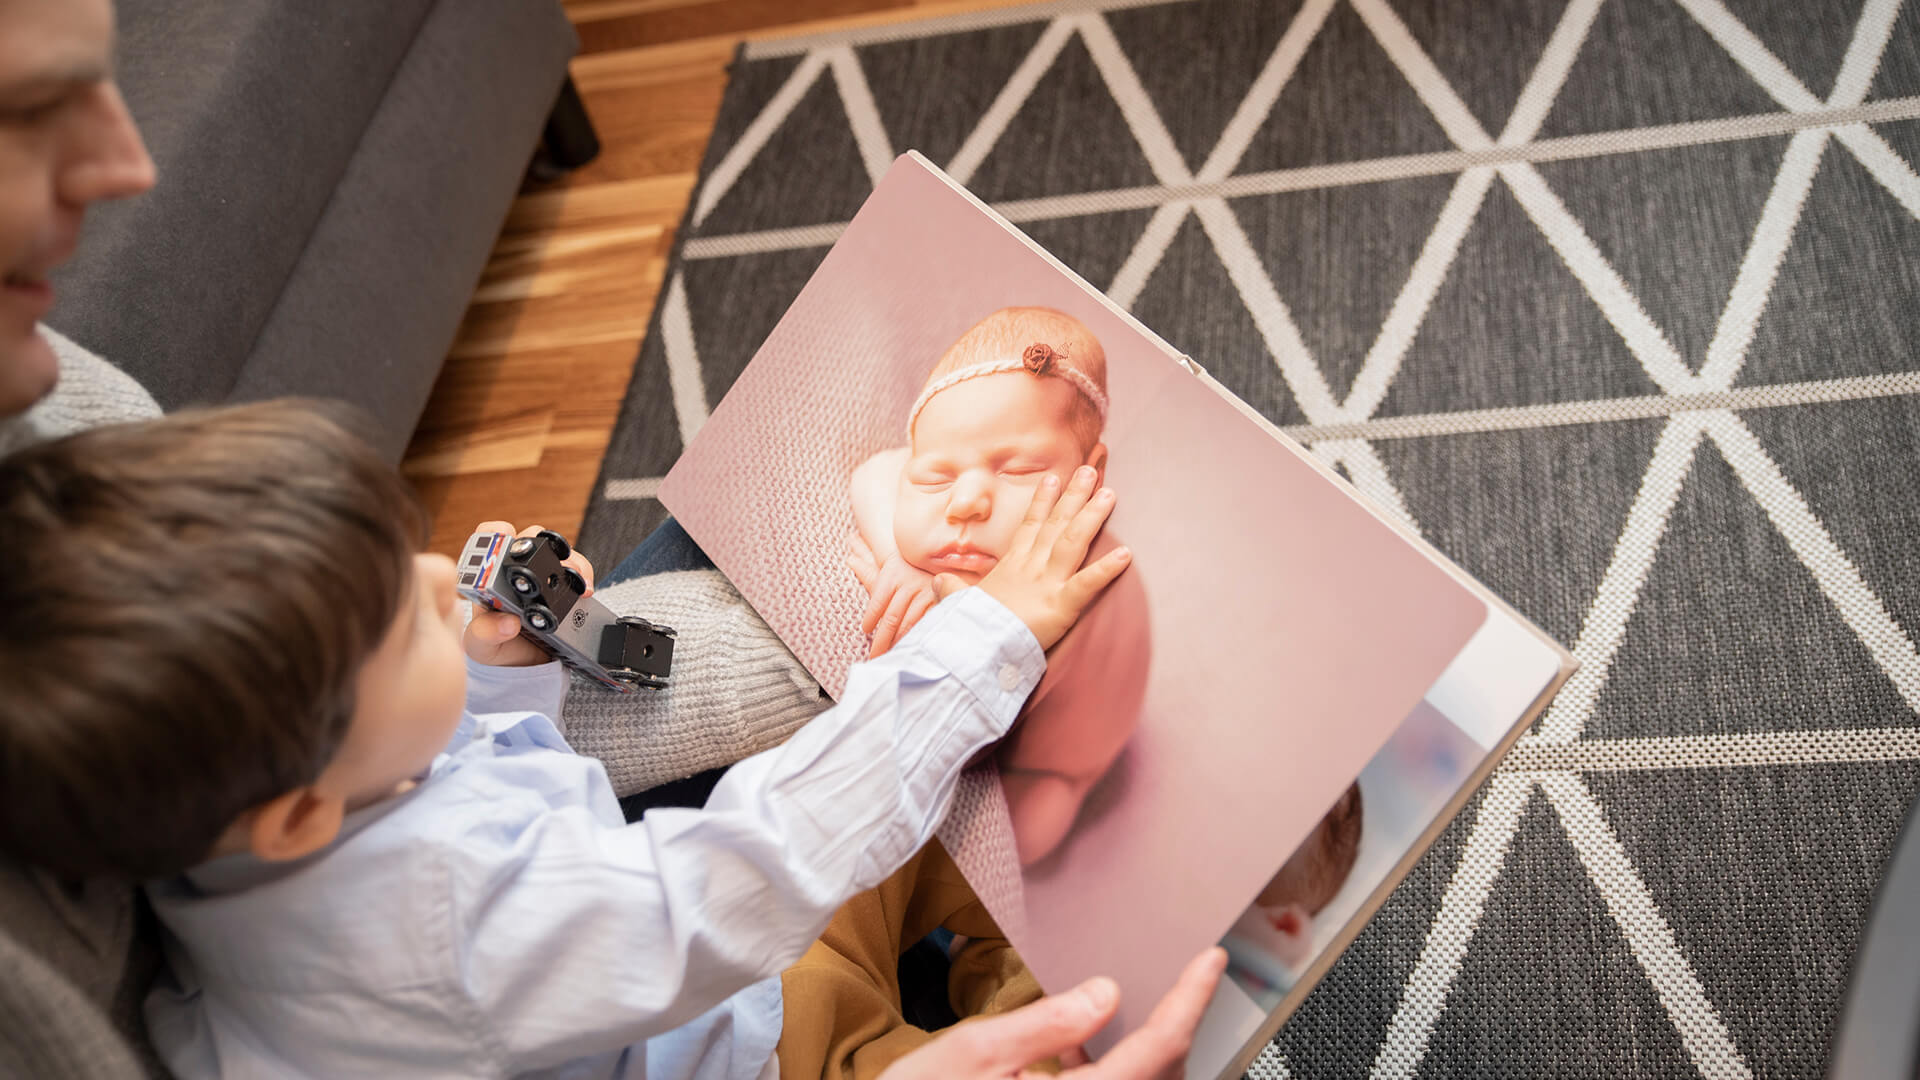 Baby Photo Albums for Professional Newborn Photographers